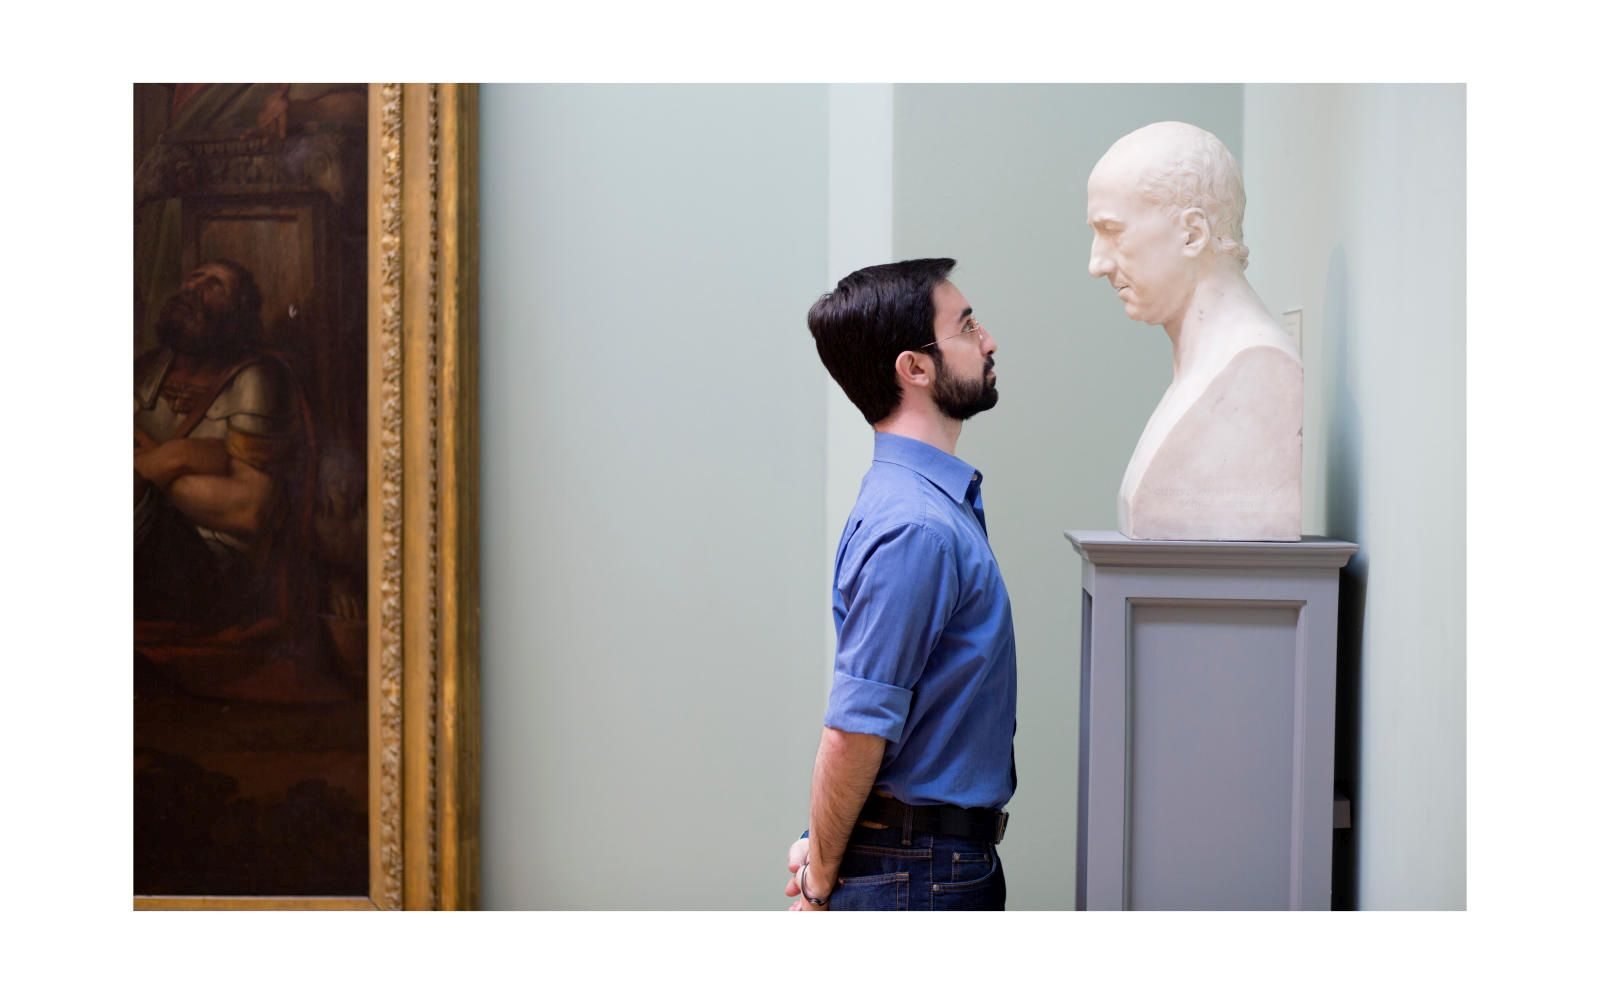 Man in a blue shirt staring eye to eye with a marble bust.